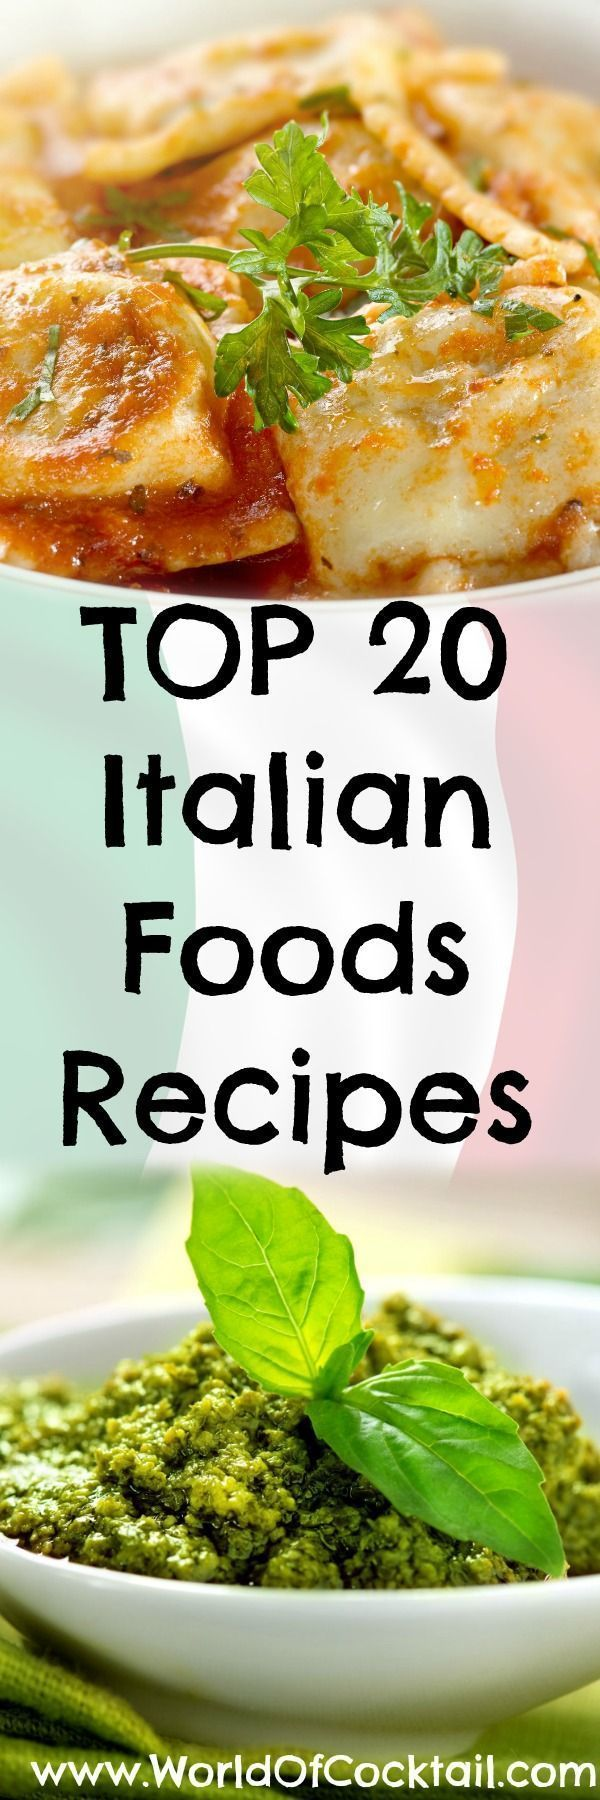 TOP 20 Italian Foods Recipes | THE EDIT Magazine - eat  shop